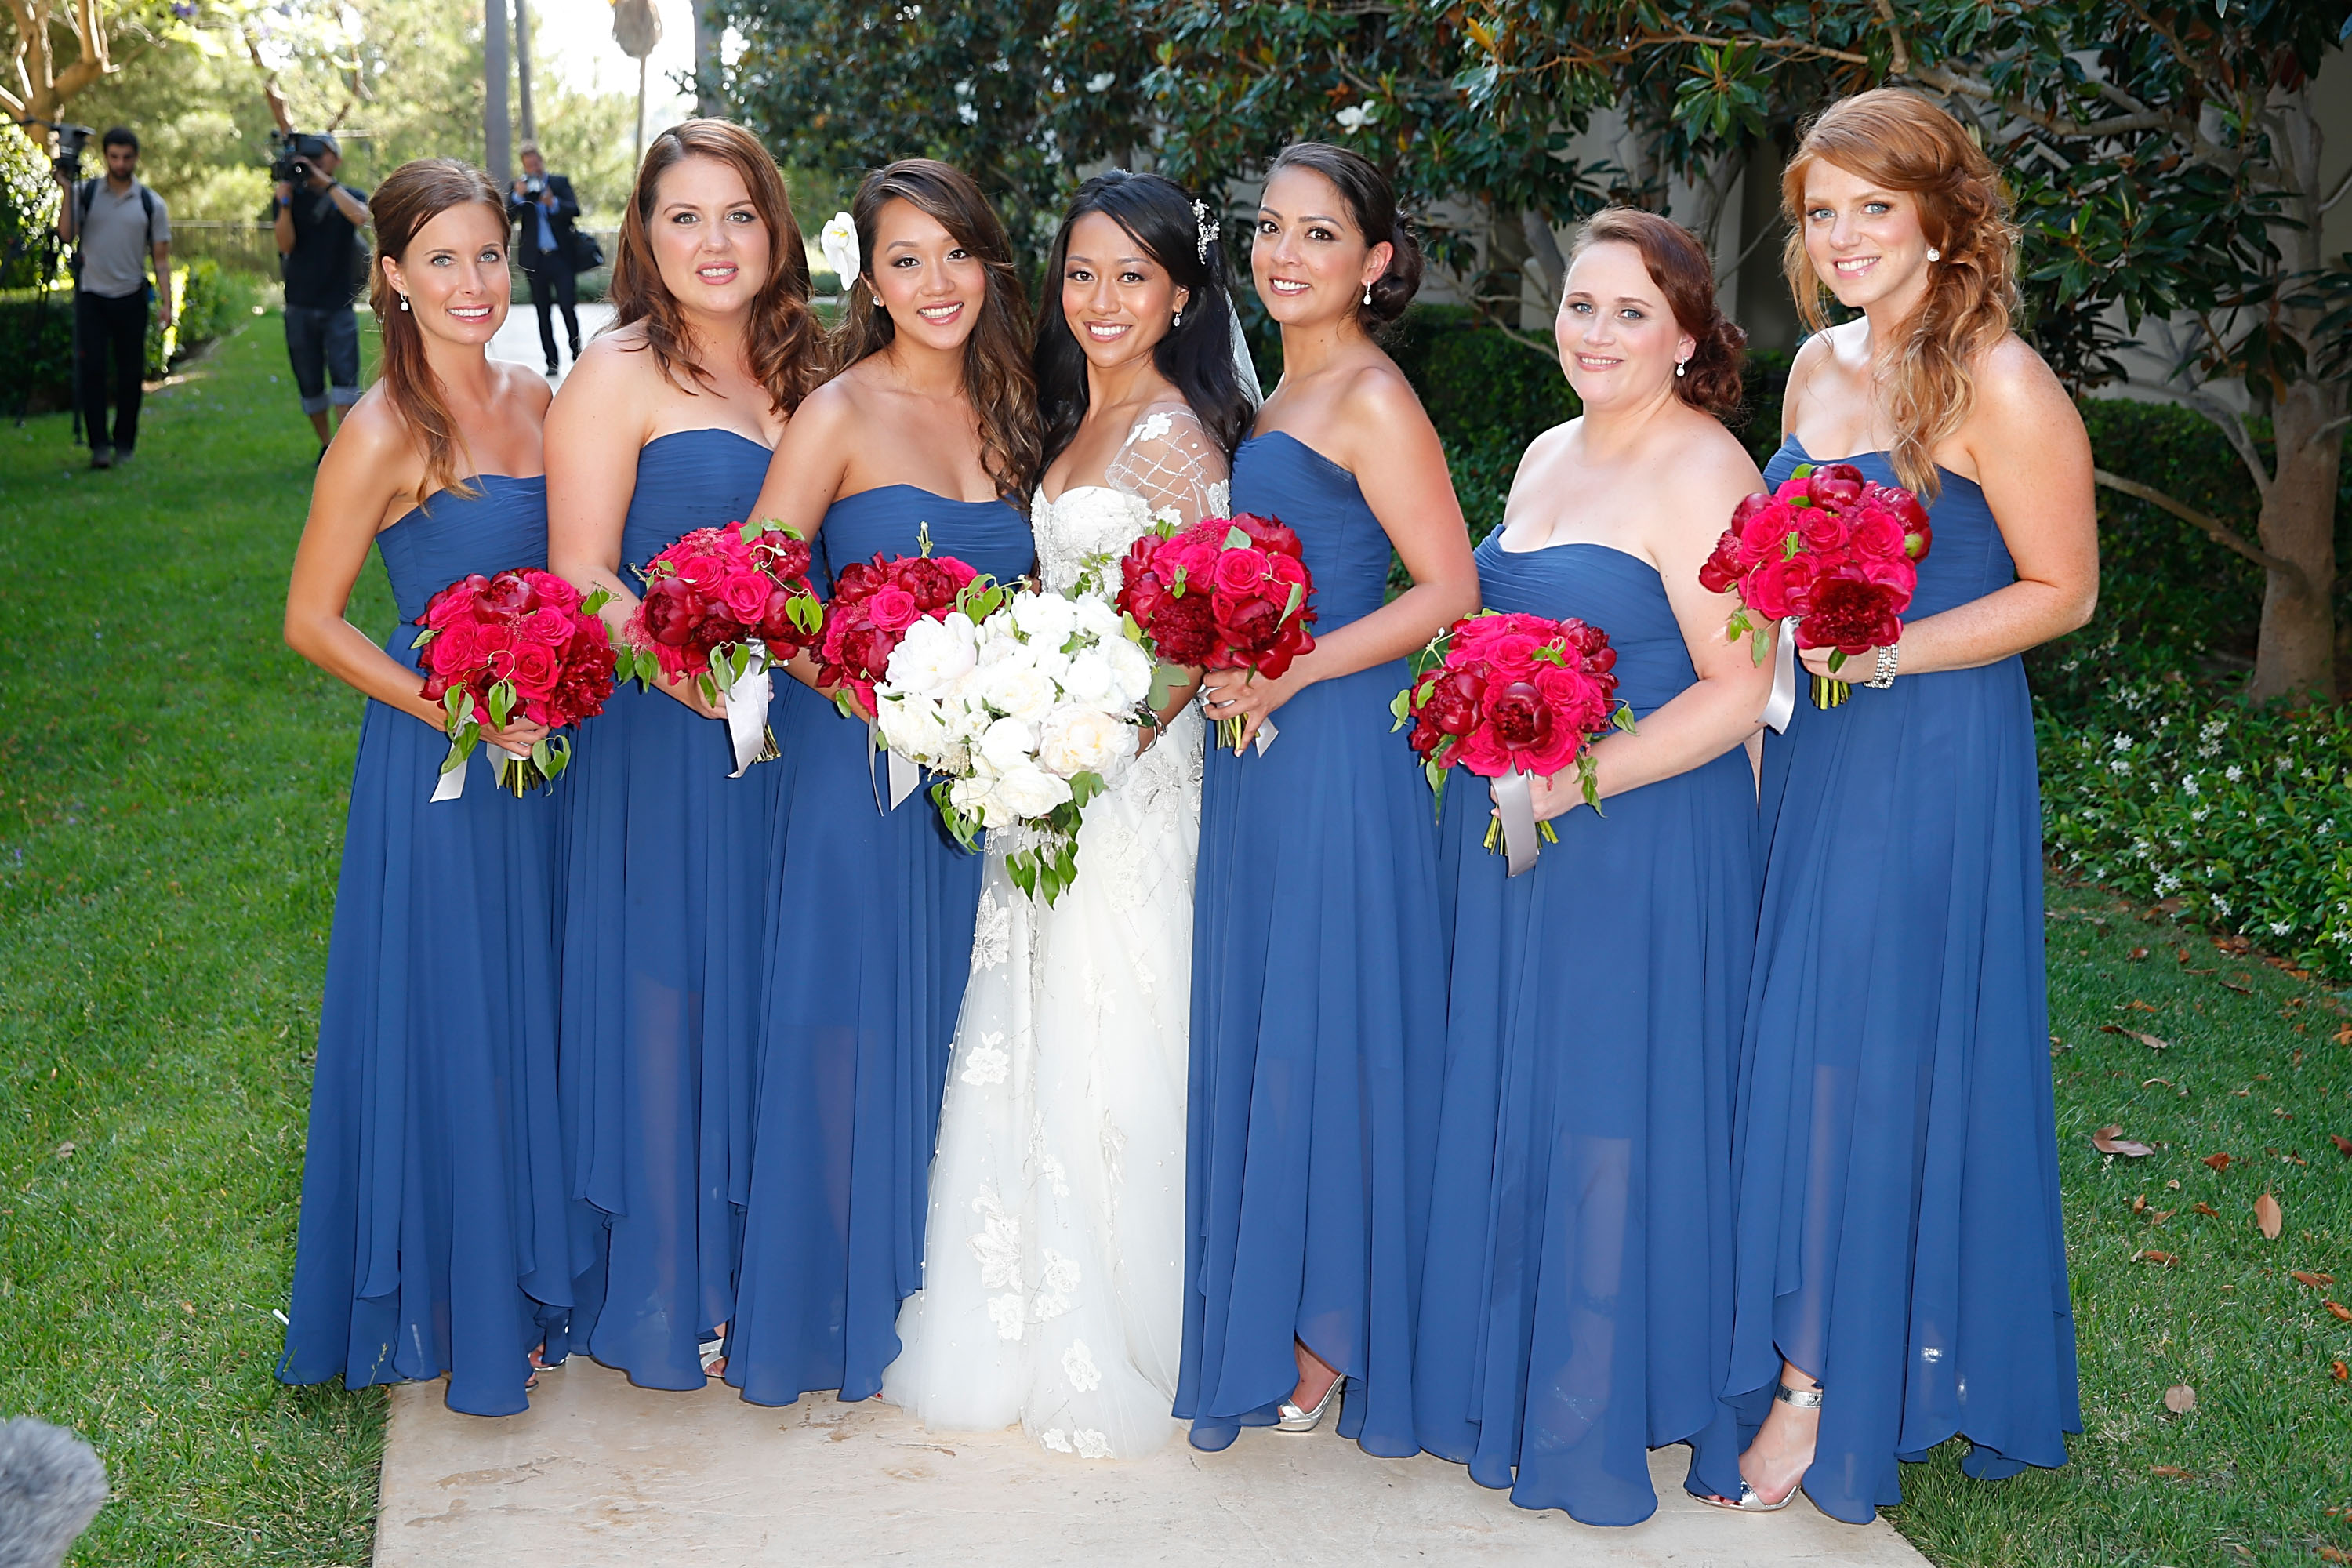 6 Reasons Bridesmaid Dresses Are The Absolute Worst And Should Be